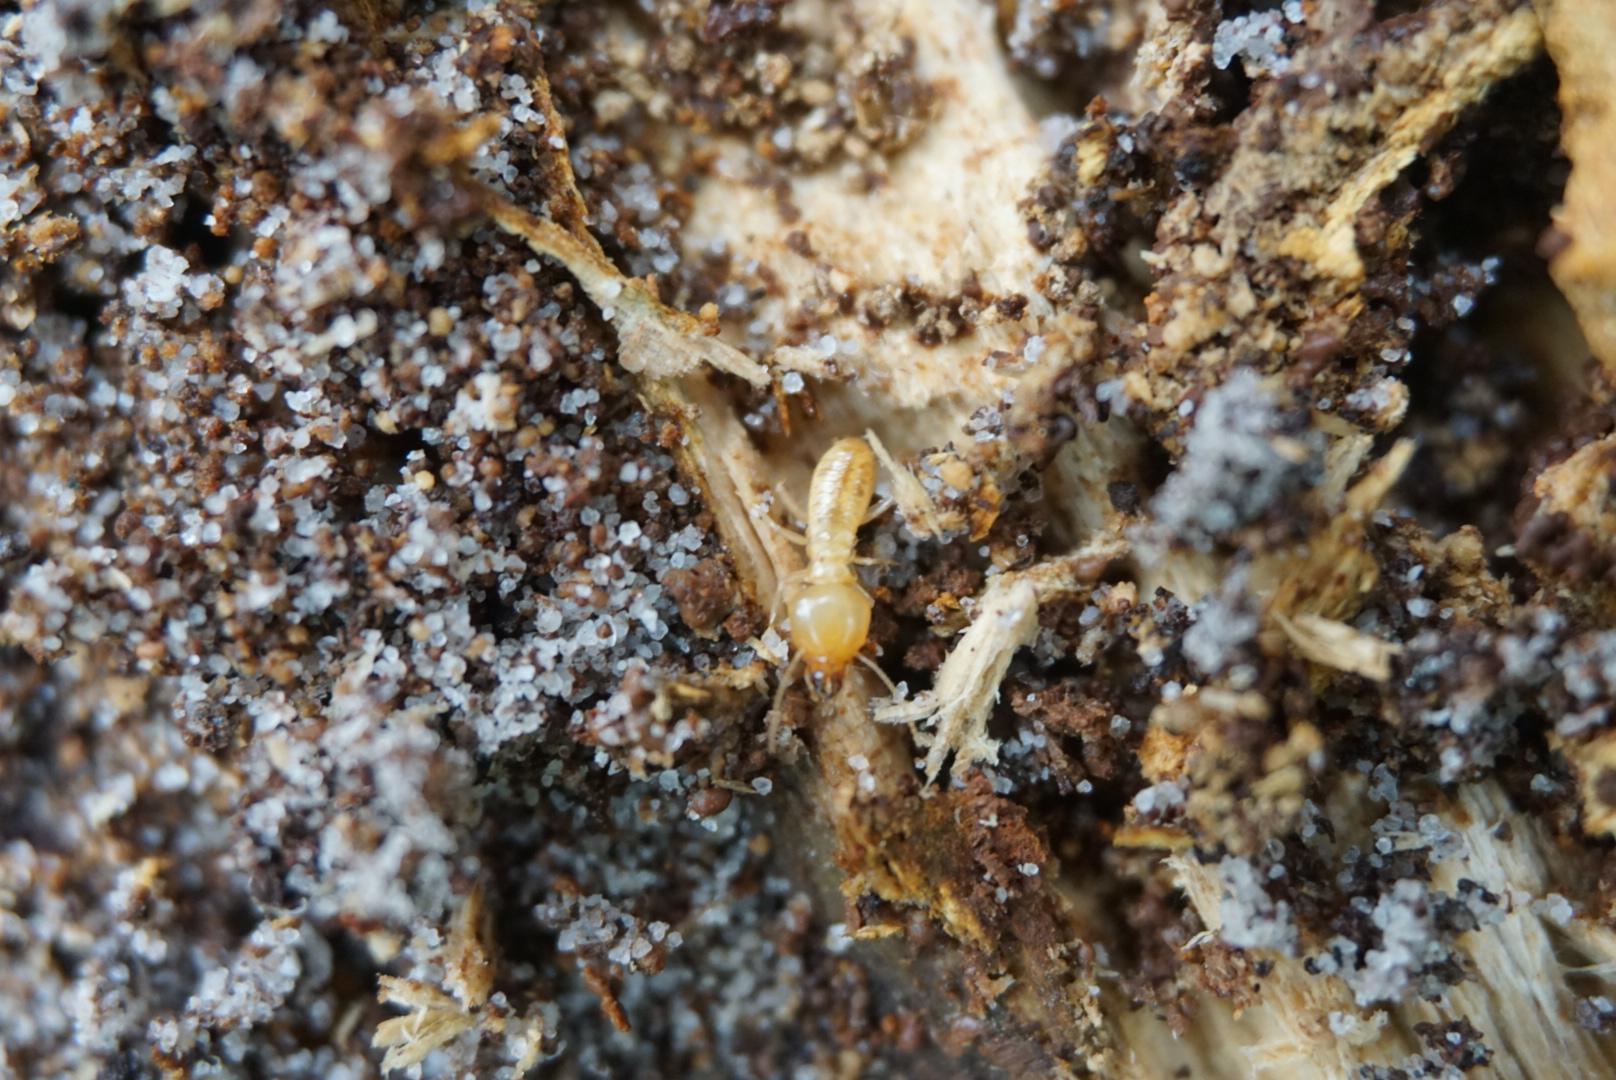 A Termite soldier. You can tell by the mandibles and darker body. This is a Schedorhinotermes major soldier.